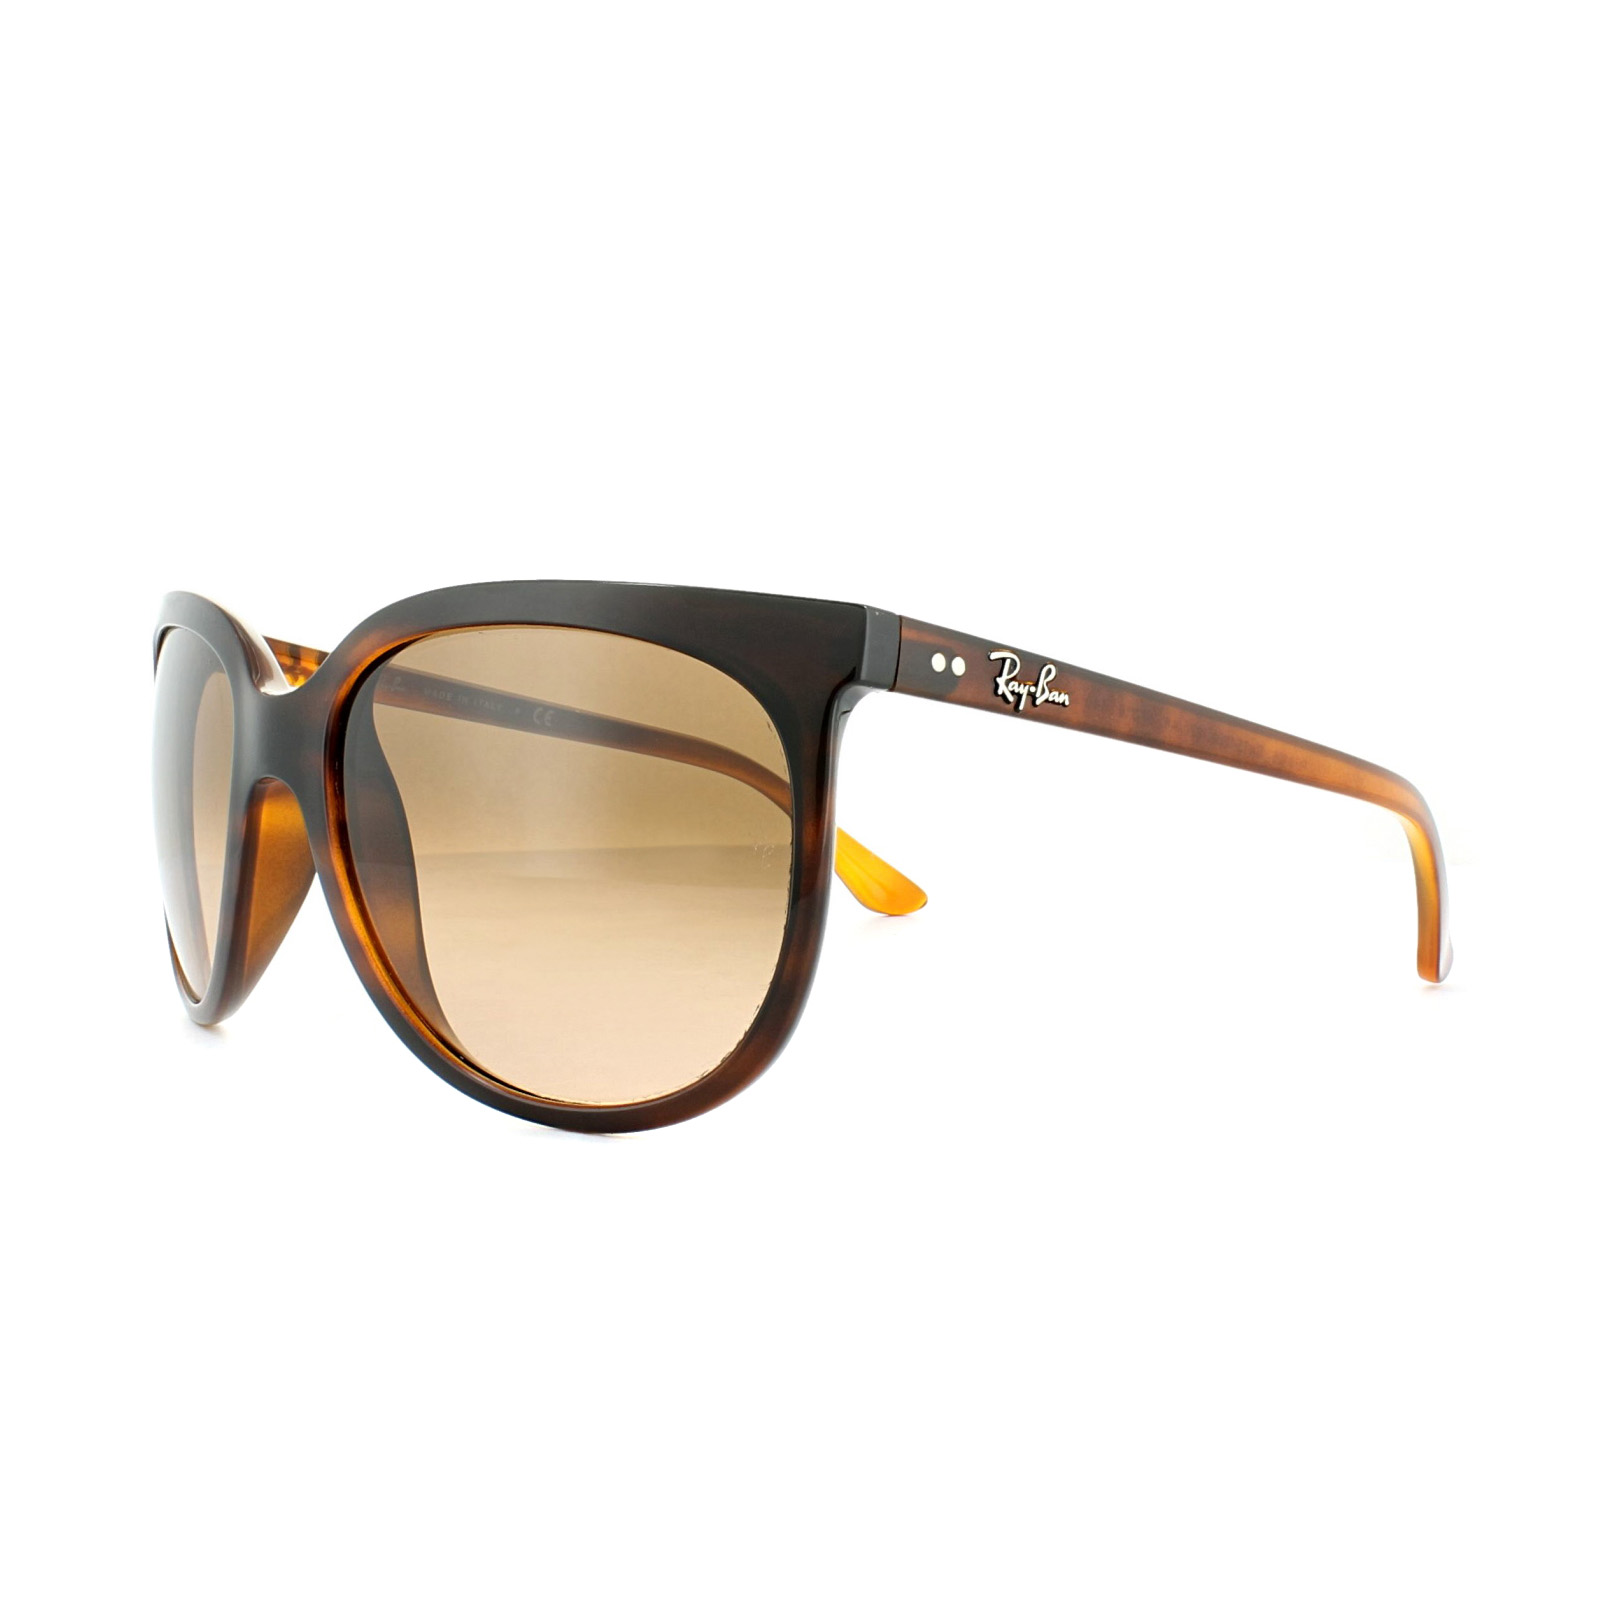 e0efe89b14 Sentinel Ray-Ban Sunglasses Cats 1000 4126 820 A5 Tortoise Pink Brown  Gradient